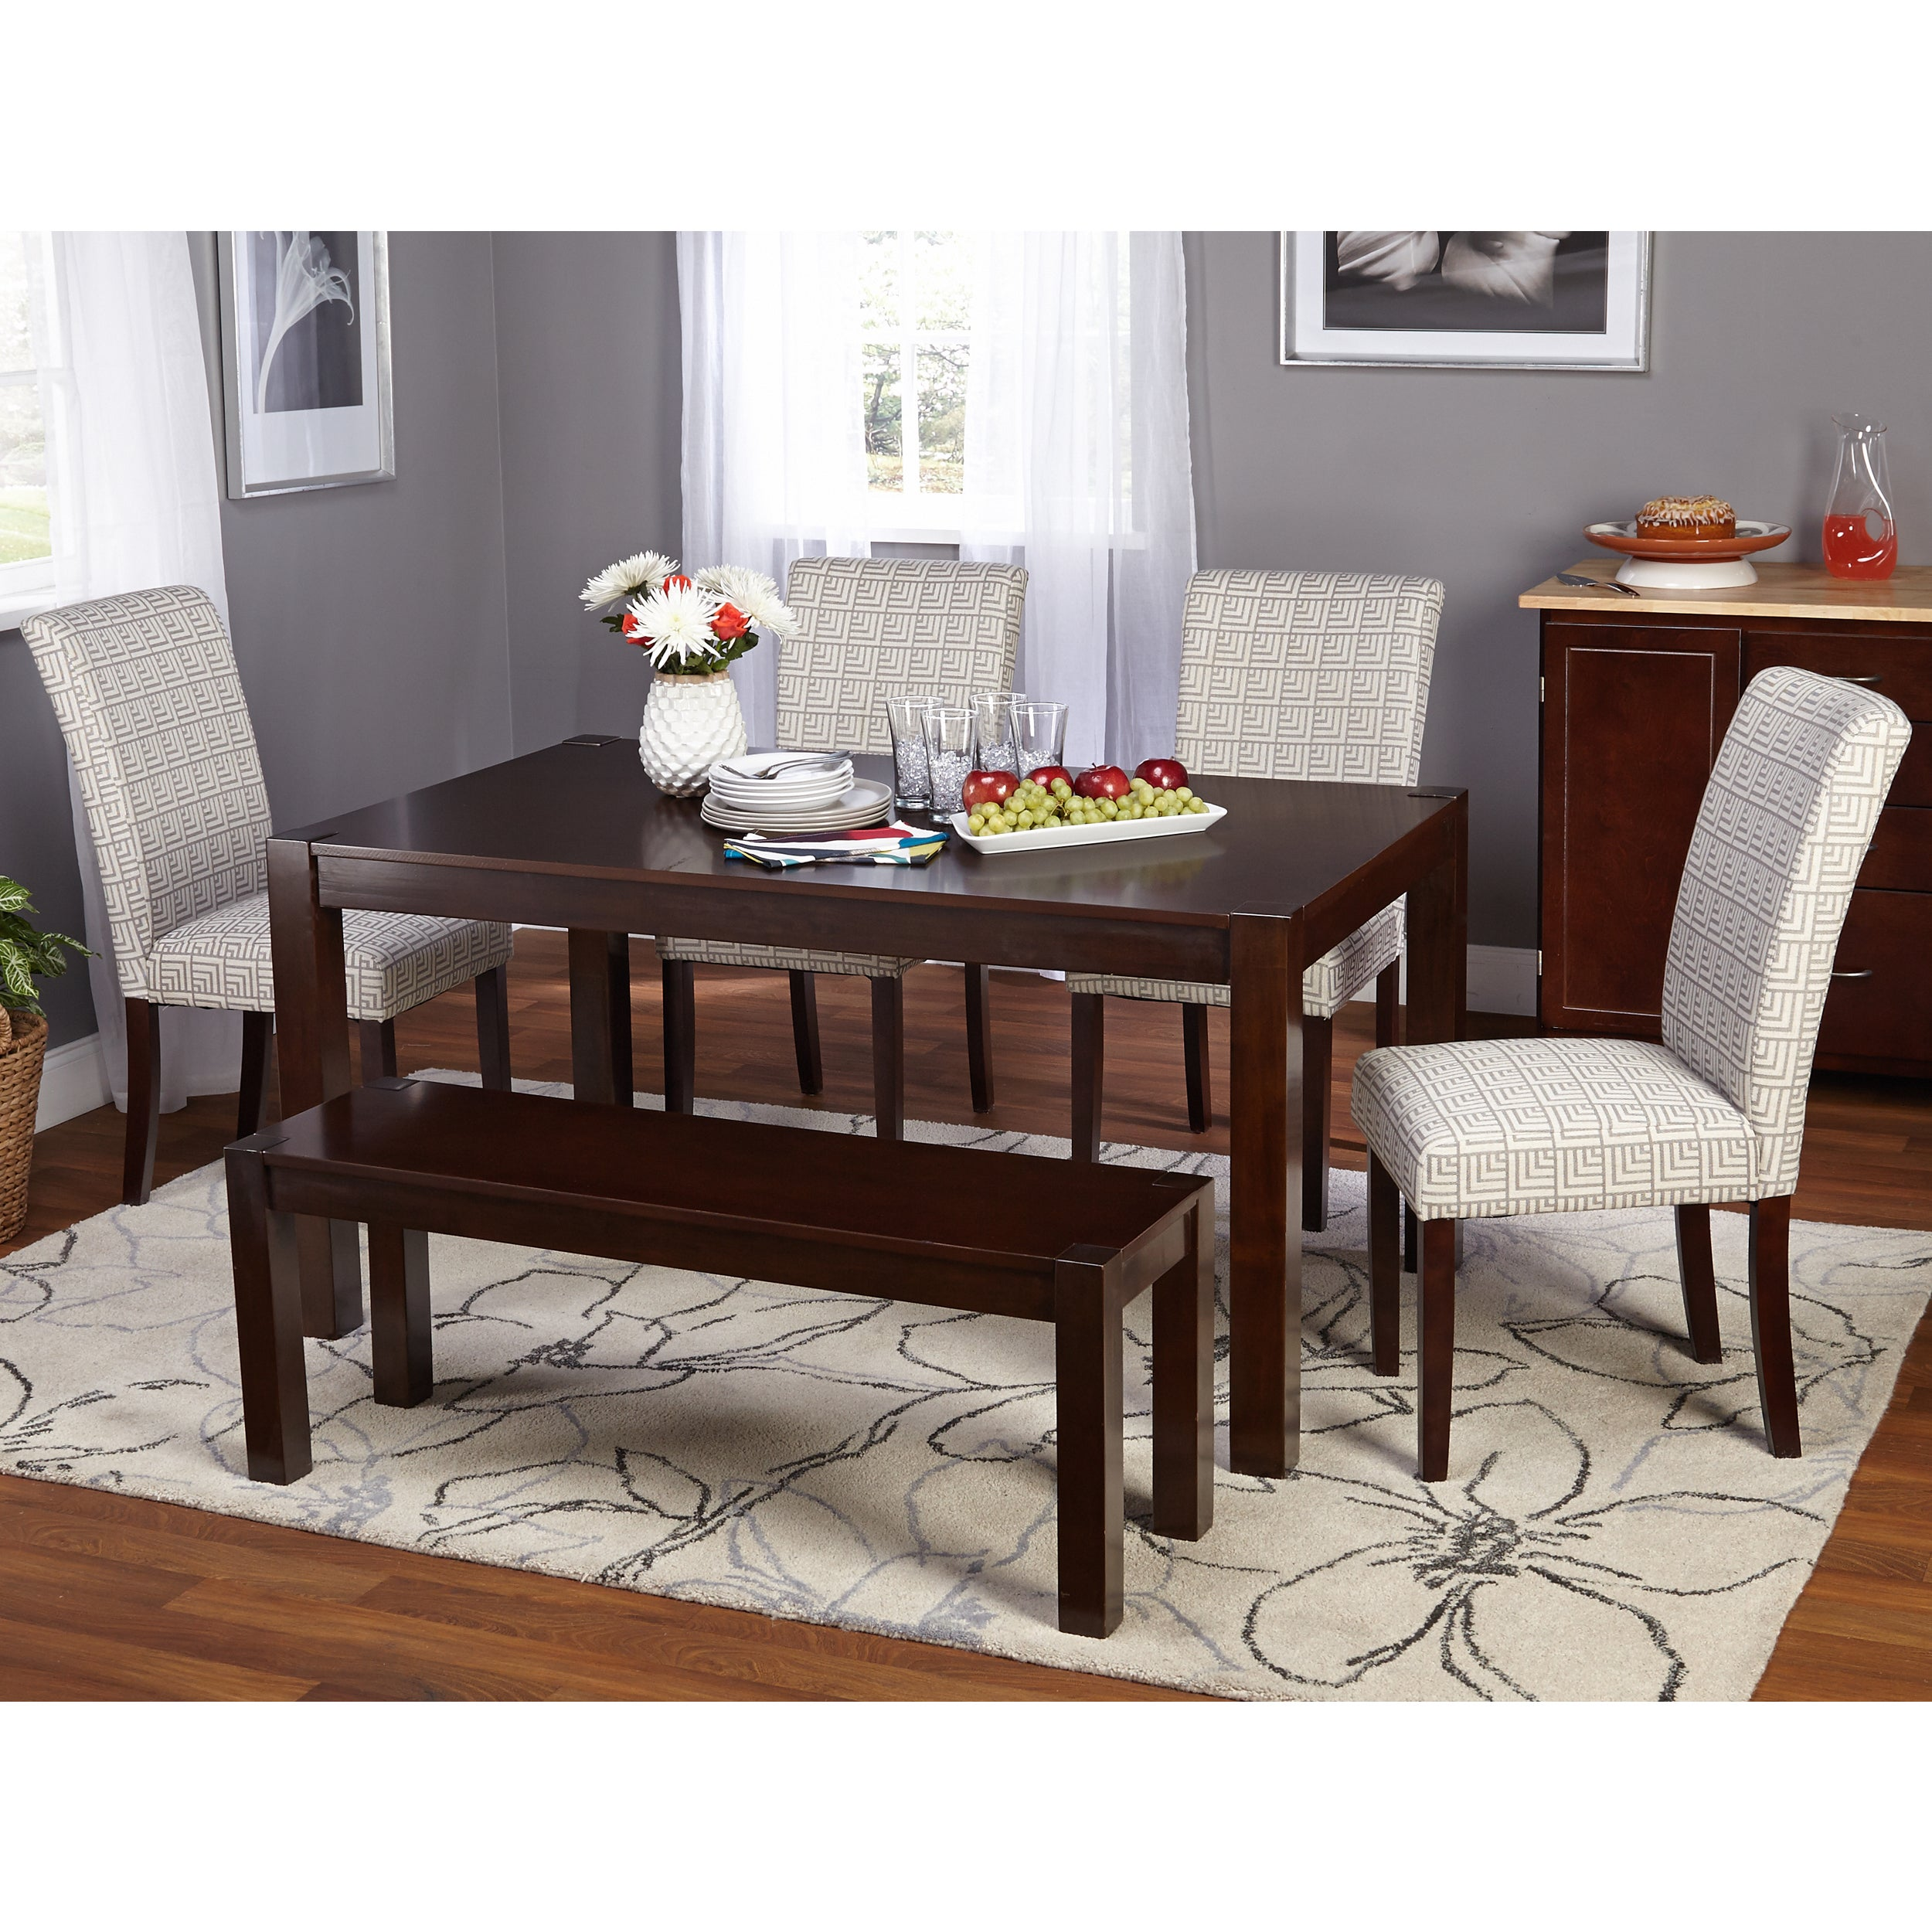 Simple Living Axis Dining Table Espresso 30 H X 60 L 36 D